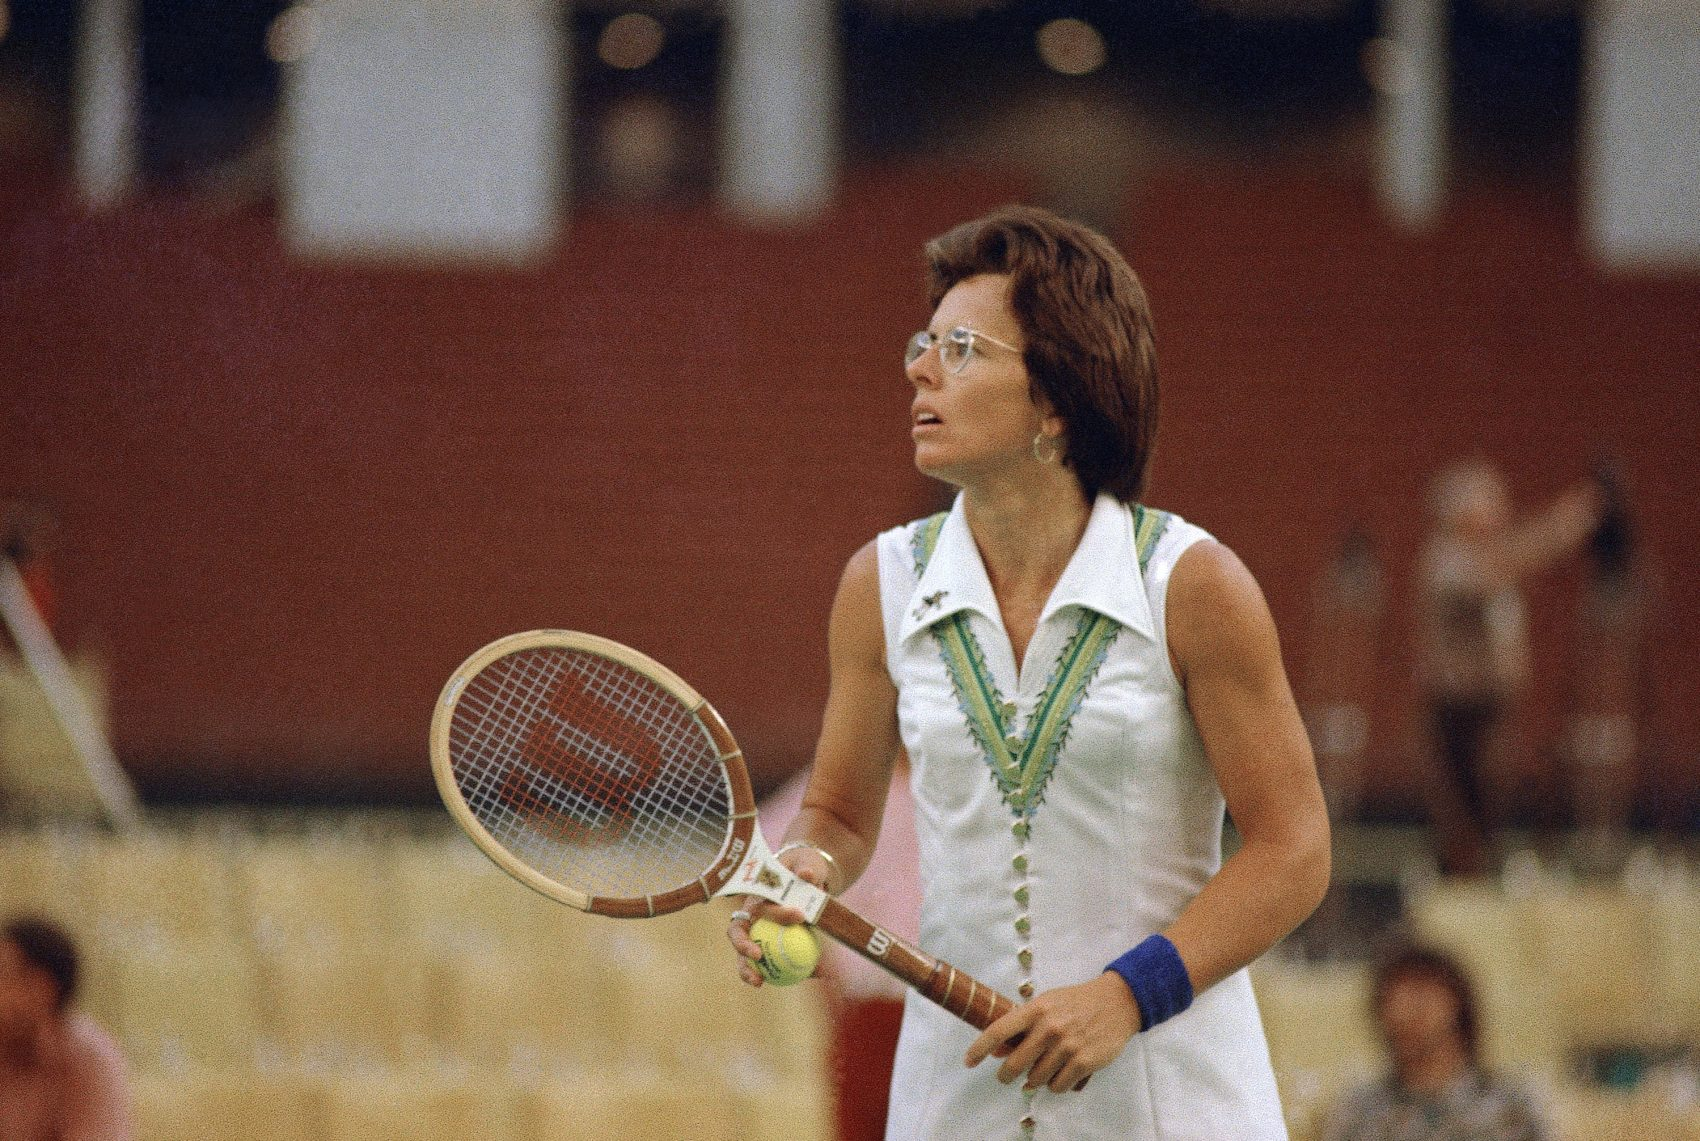 Battle of the Sexes (2017 film) - Wikipedia